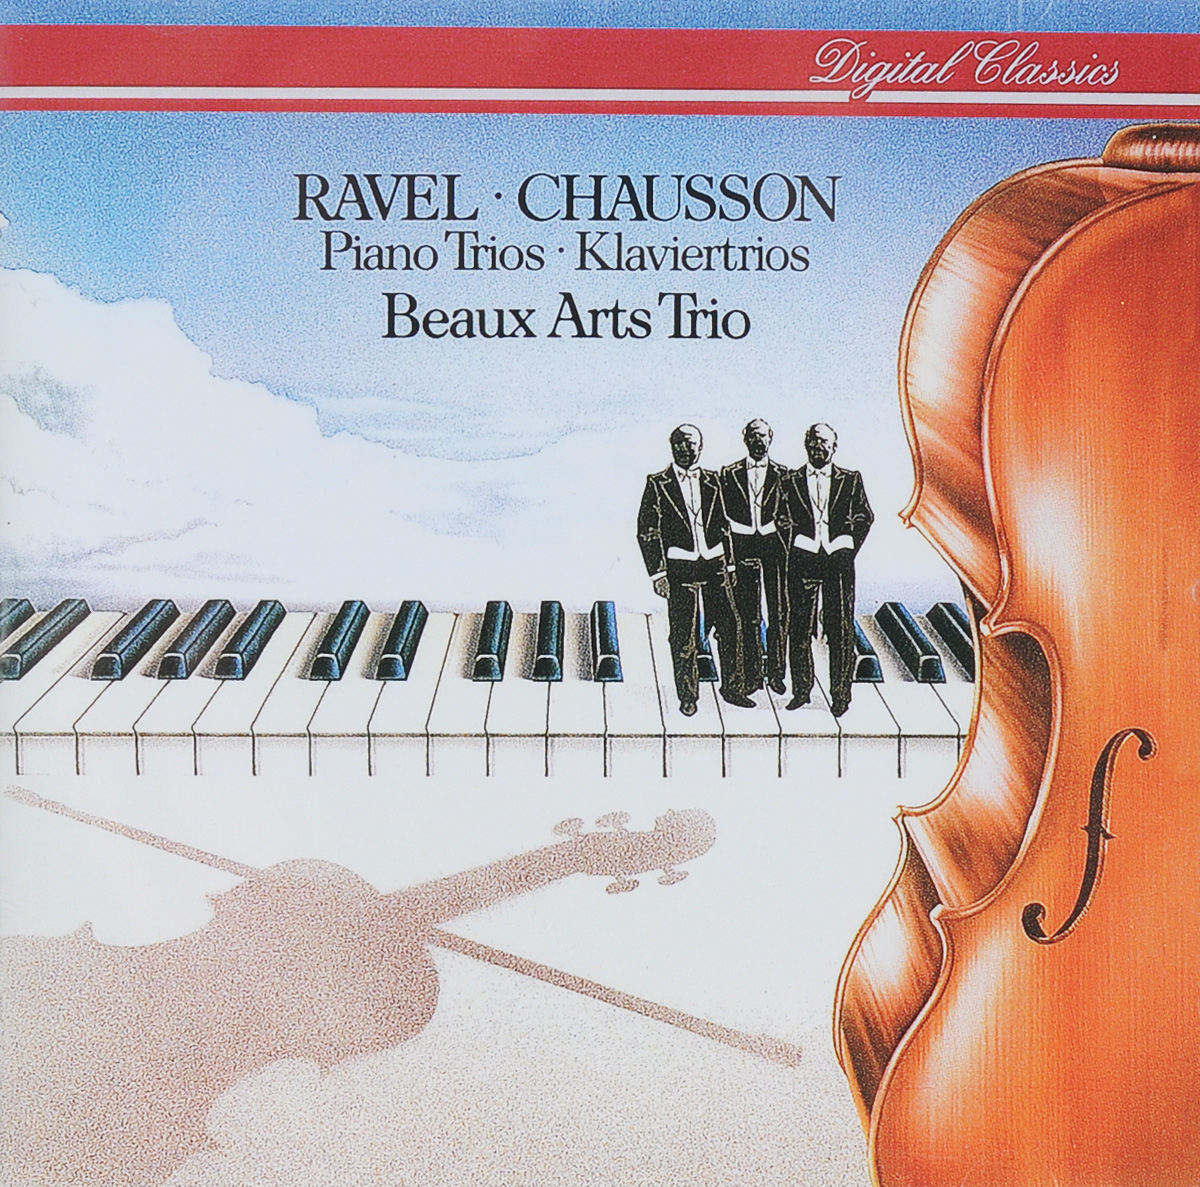 Beaux Arts Trio Beaux Arts Trio. Ravel / Chausson. Piano Trios владимир ашкенази лиля зильберштайн олли мустонен линн харрелл beaux arts trio fitzwilliam string quartet shostakovich piano music chamber works 5 cd page 9